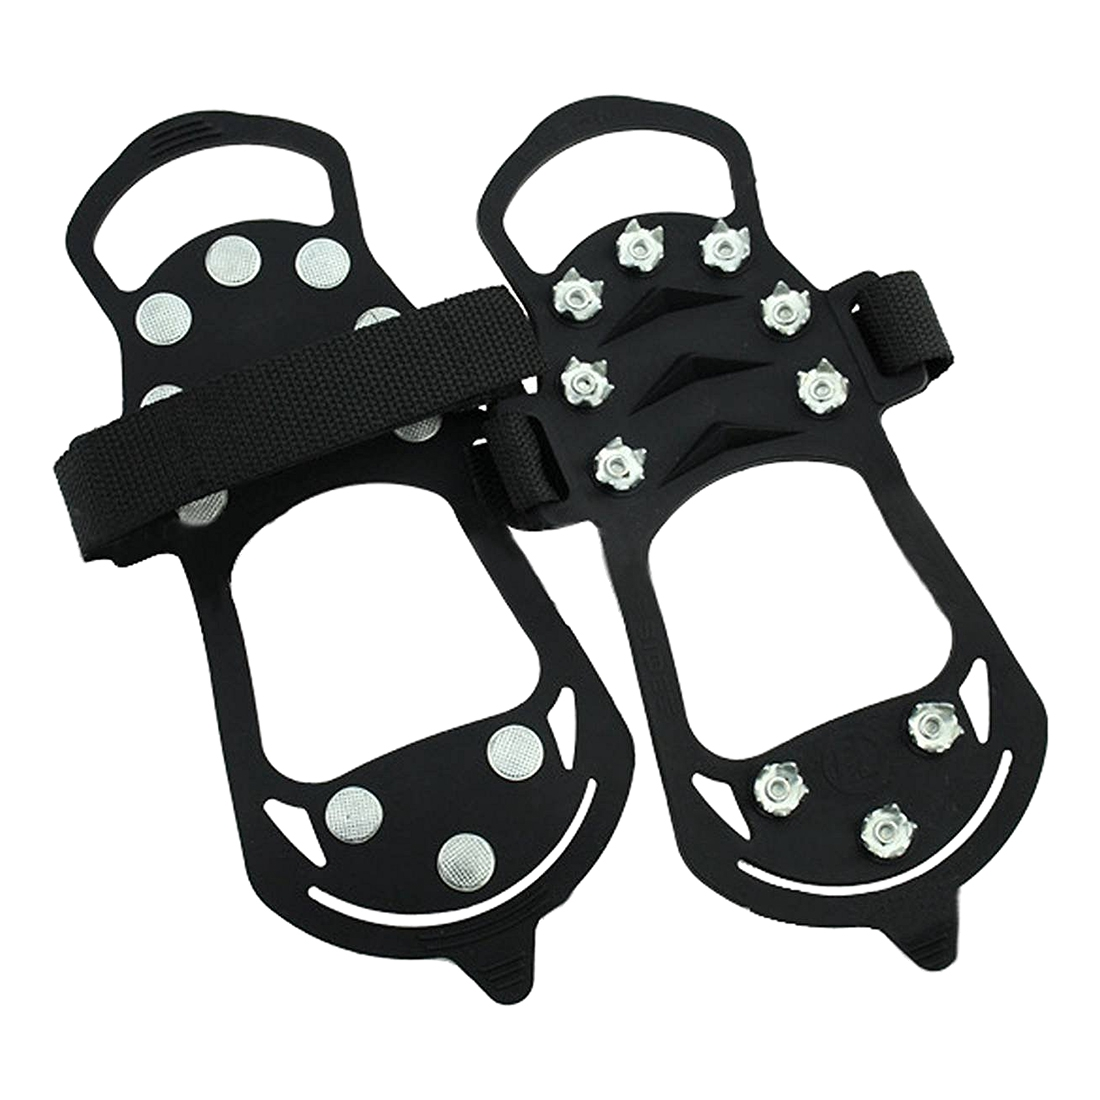 Shoe spikes Shoe claws, anti-slip crampons shoes, spikes Snow chain for the boot все цены